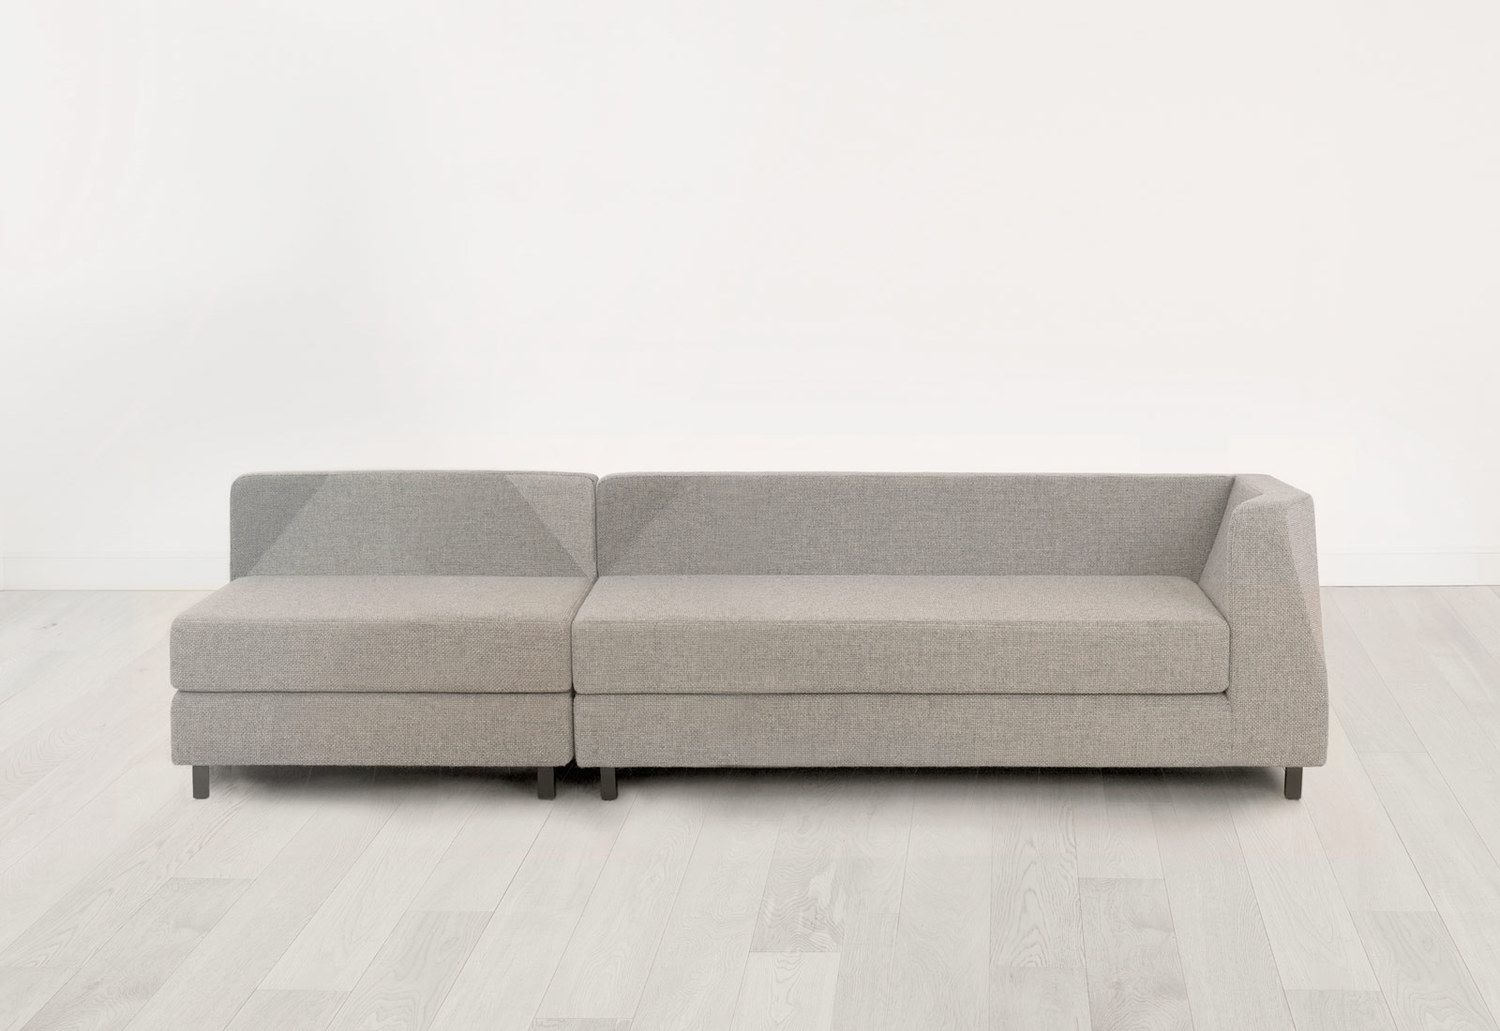 Small Sectional Sofa Name Ear Sofa Designer St Ely Location Montreal Canada